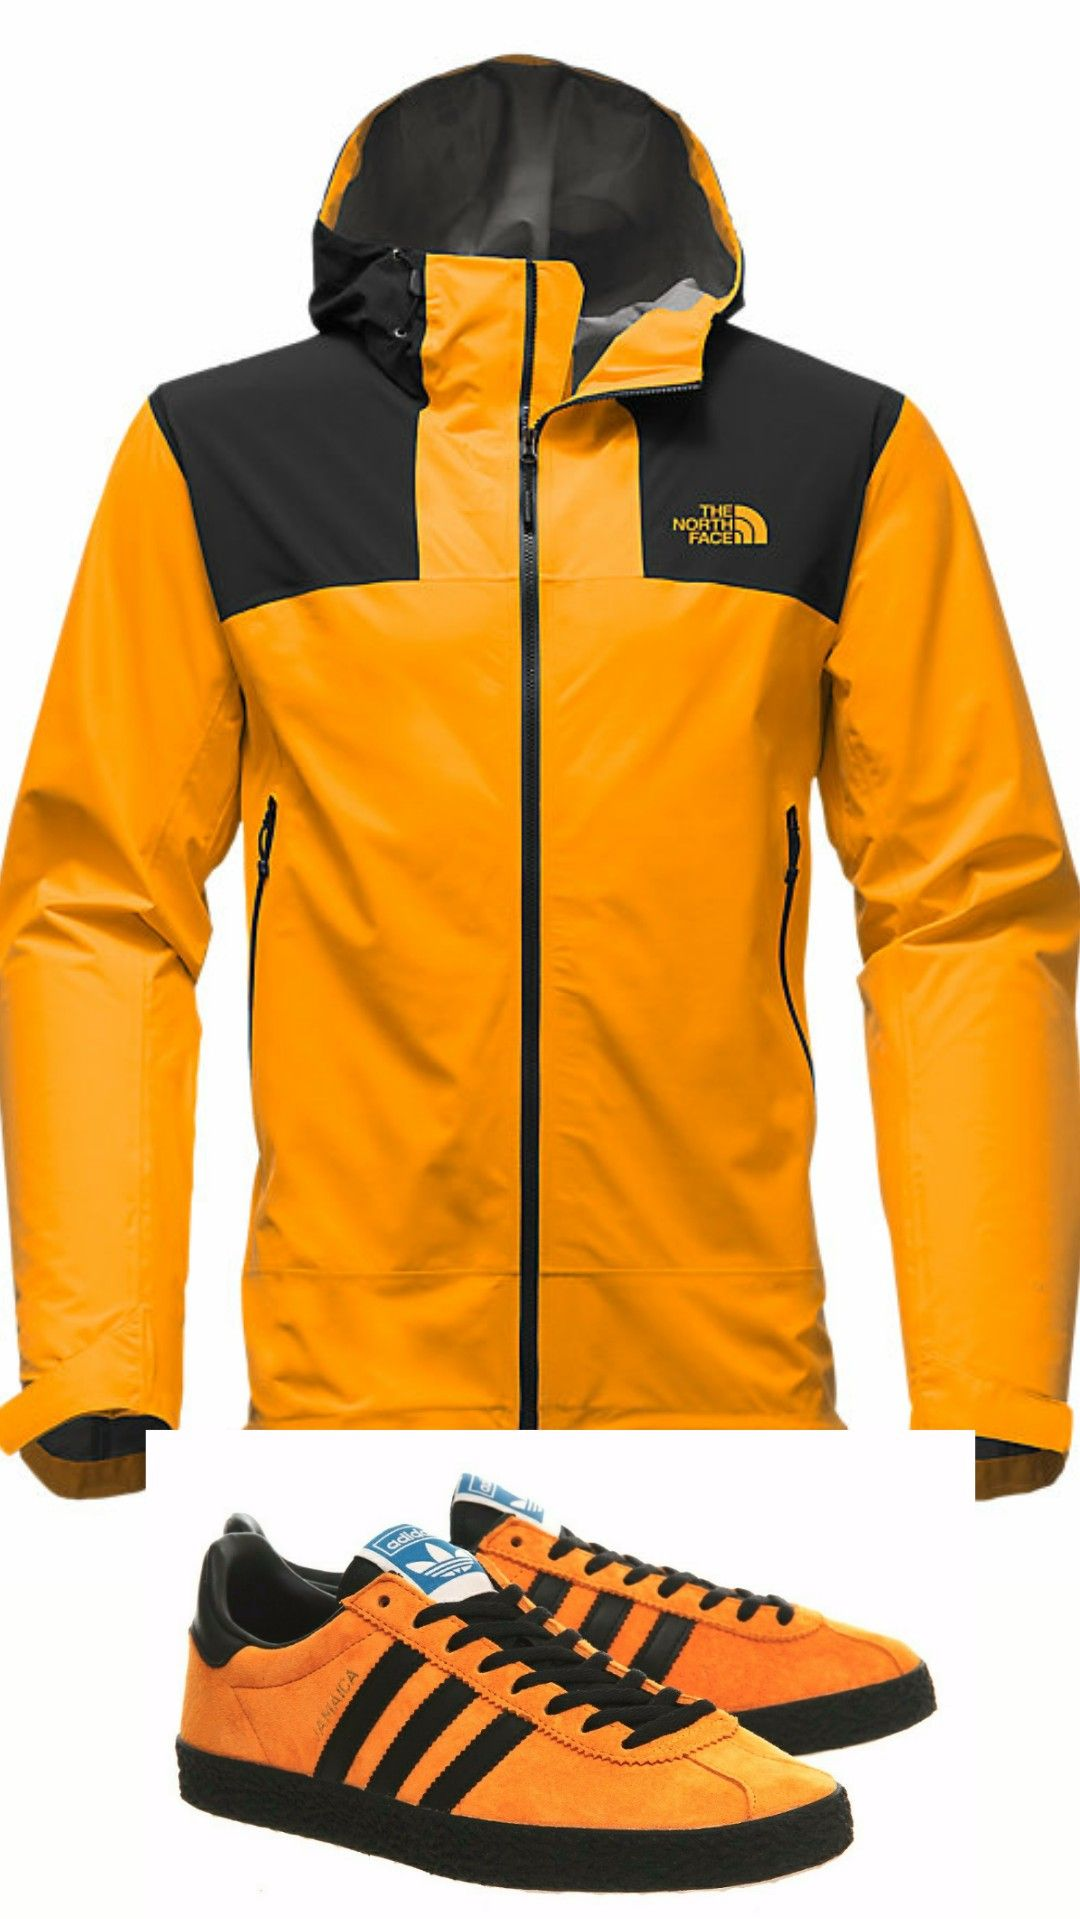 c1841855d524 Adidas Jamaicas are the perfect partner for the North Face Leonidas 2 jacket